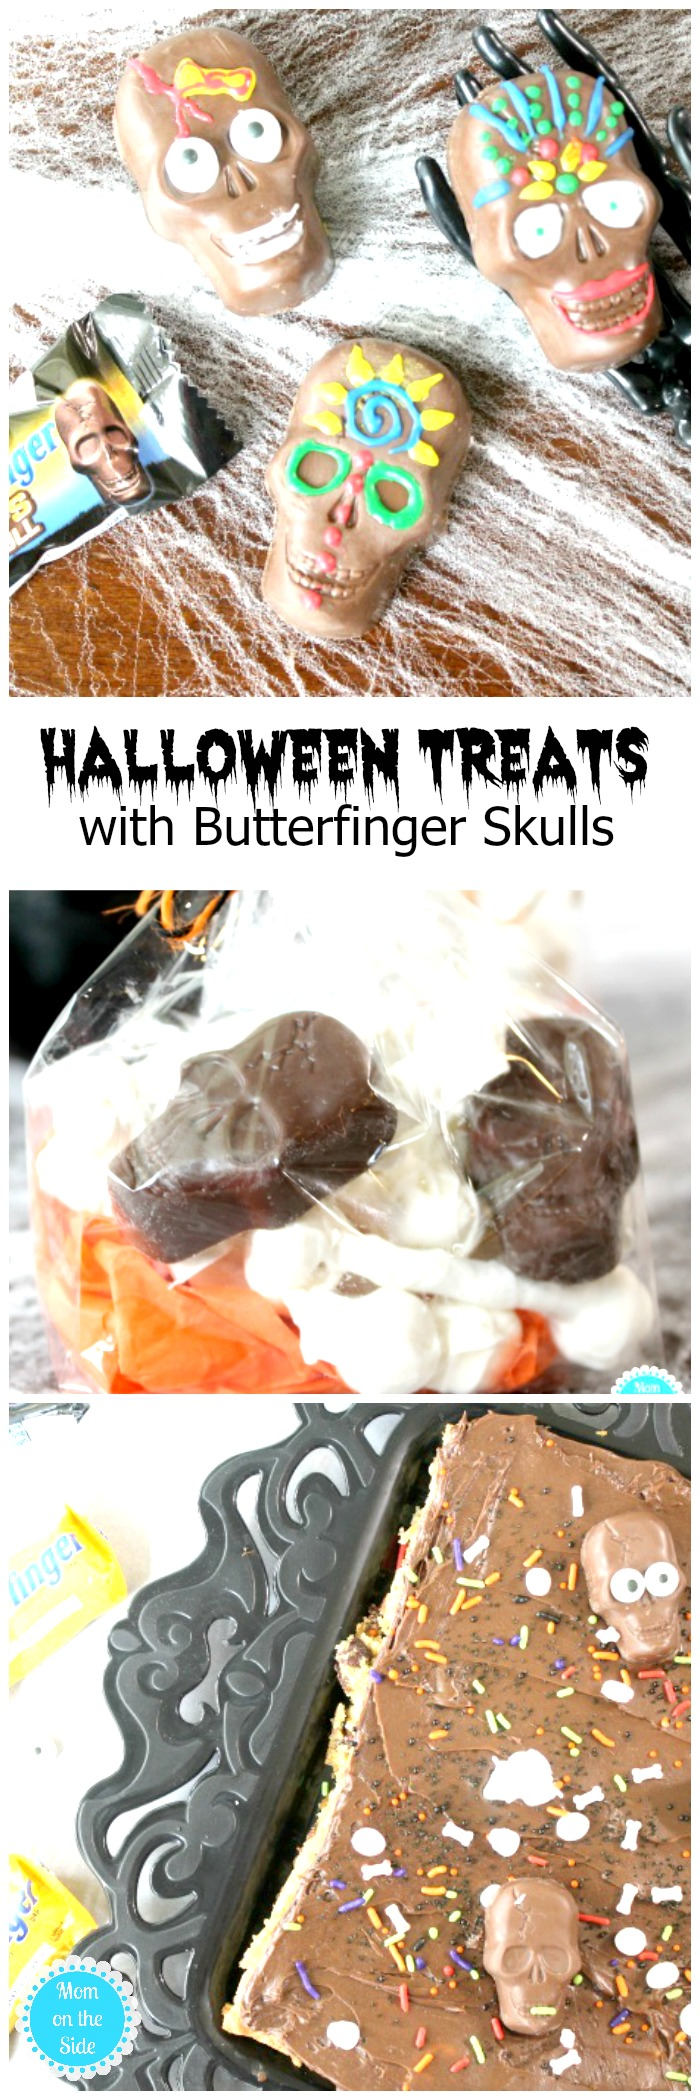 Like simple and fun treats for holidays? Here are 3 easy Halloween Treats with Butterfinger Skulls! New Butterfinger Skulls Cups are at Walmart this season!